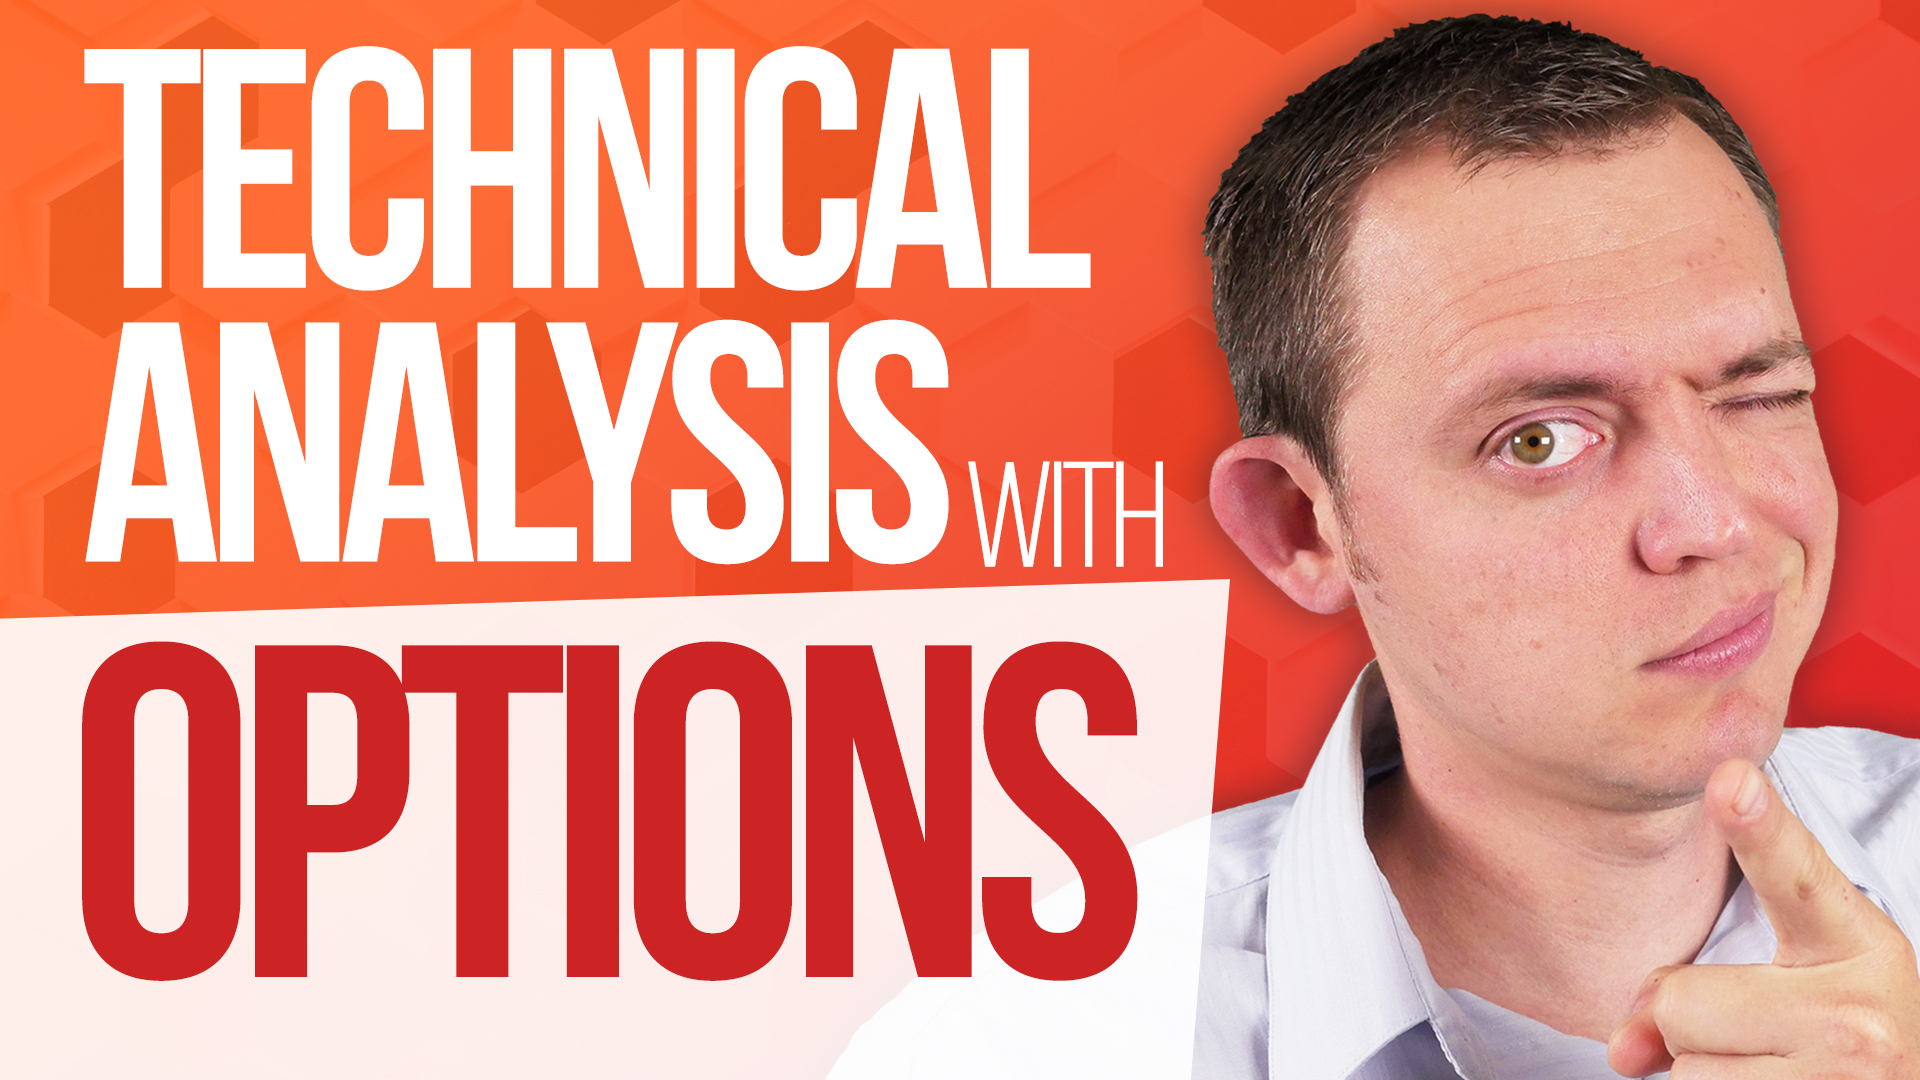 Basic Technical Analysis with Options and Choosing Durations (Members Preview)